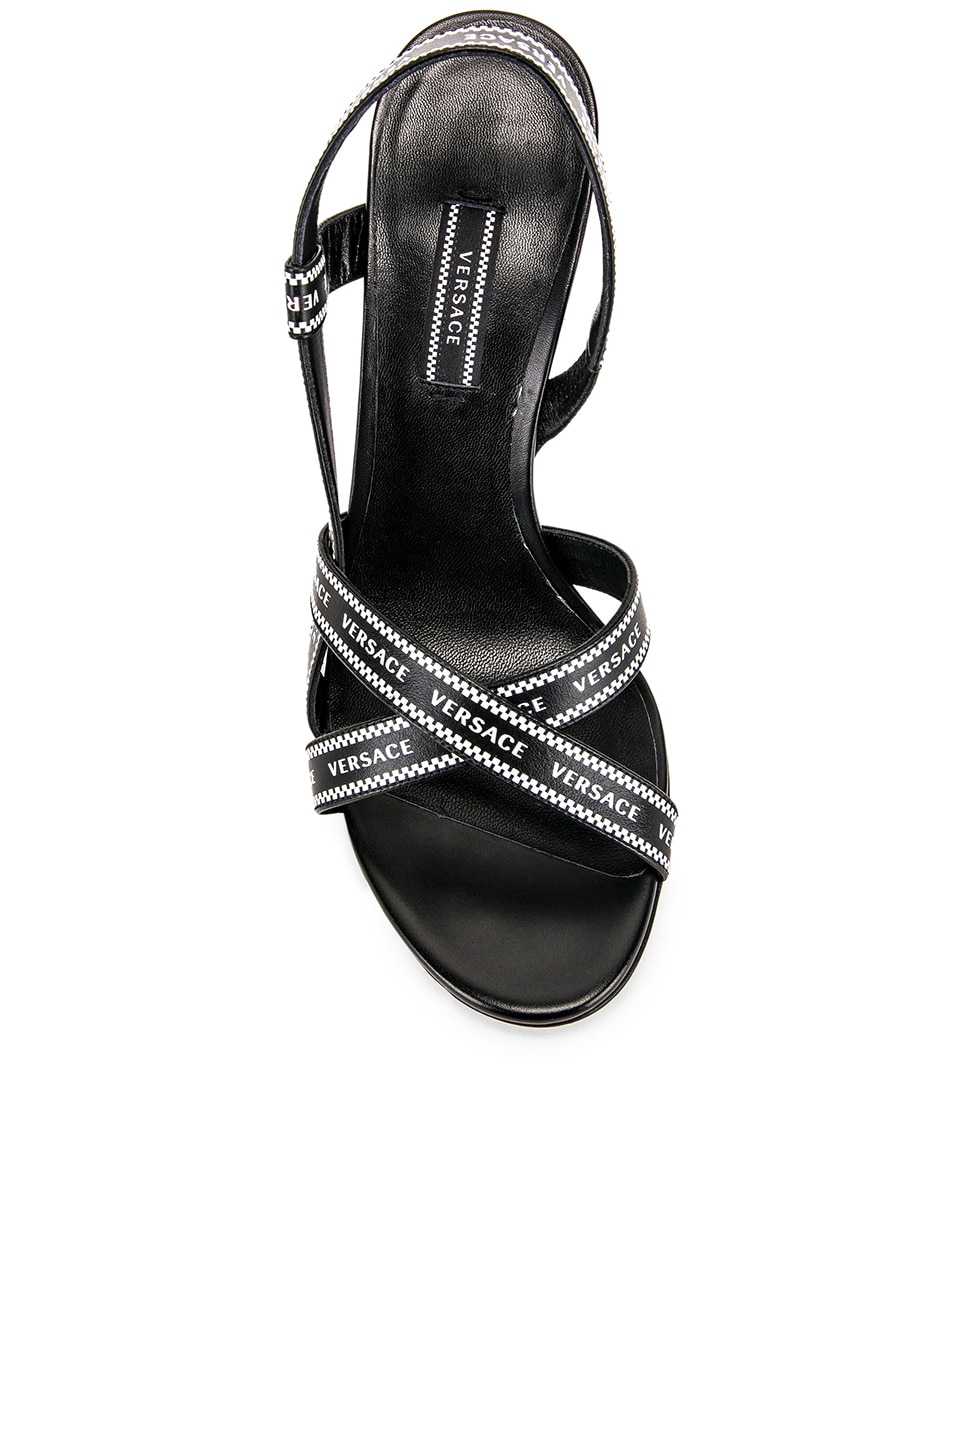 Image 4 of VERSACE Logo Strap Heels in Black & White